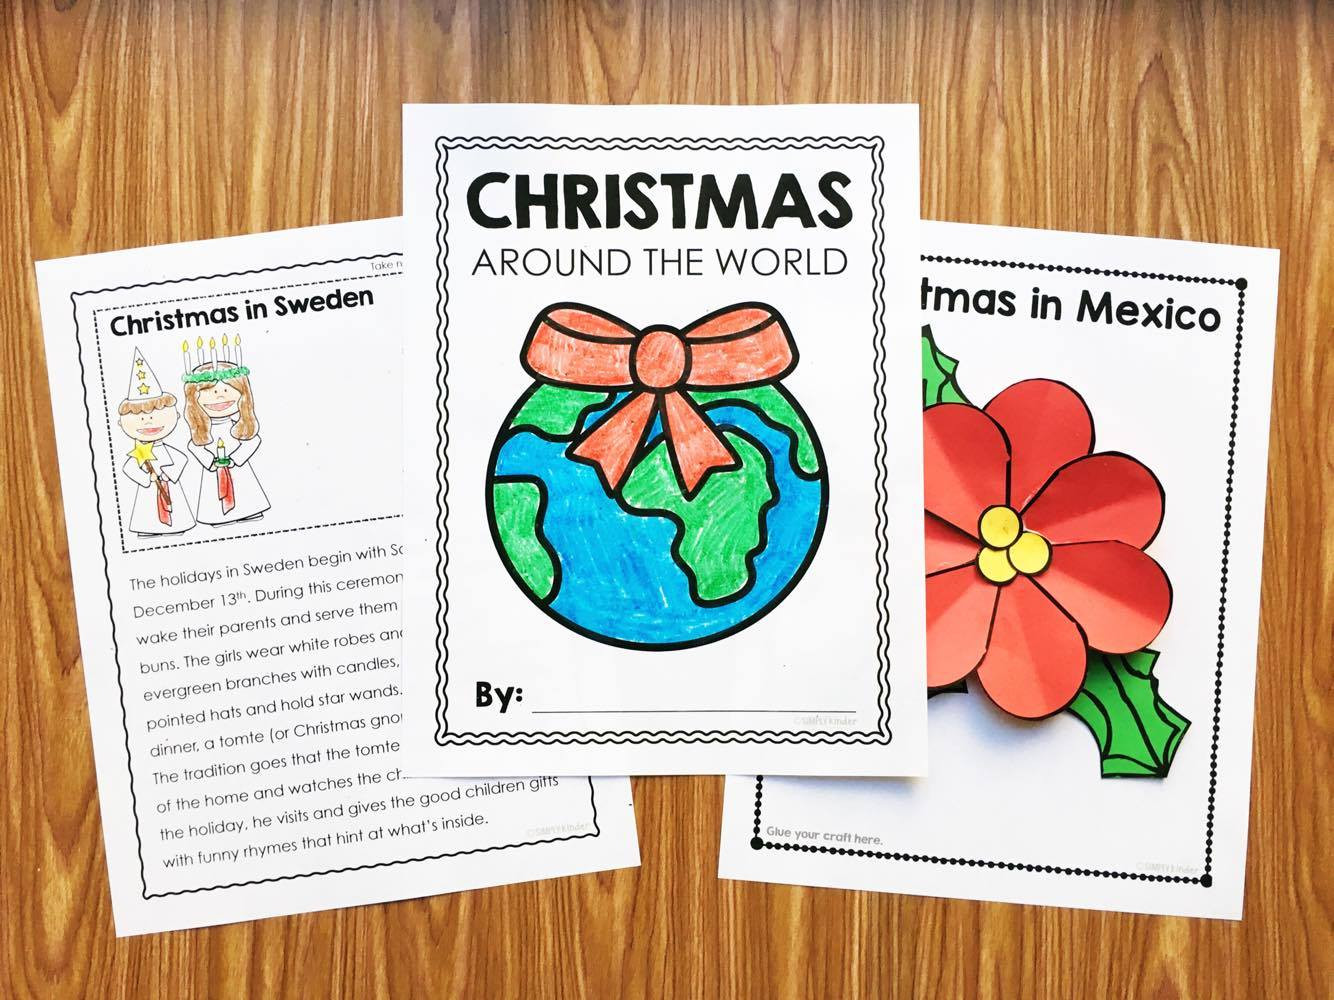 Best ideas about Around The World Crafts For Kids . Save or Pin Christmas Around the World Videos for Kids Simply Kinder Now.